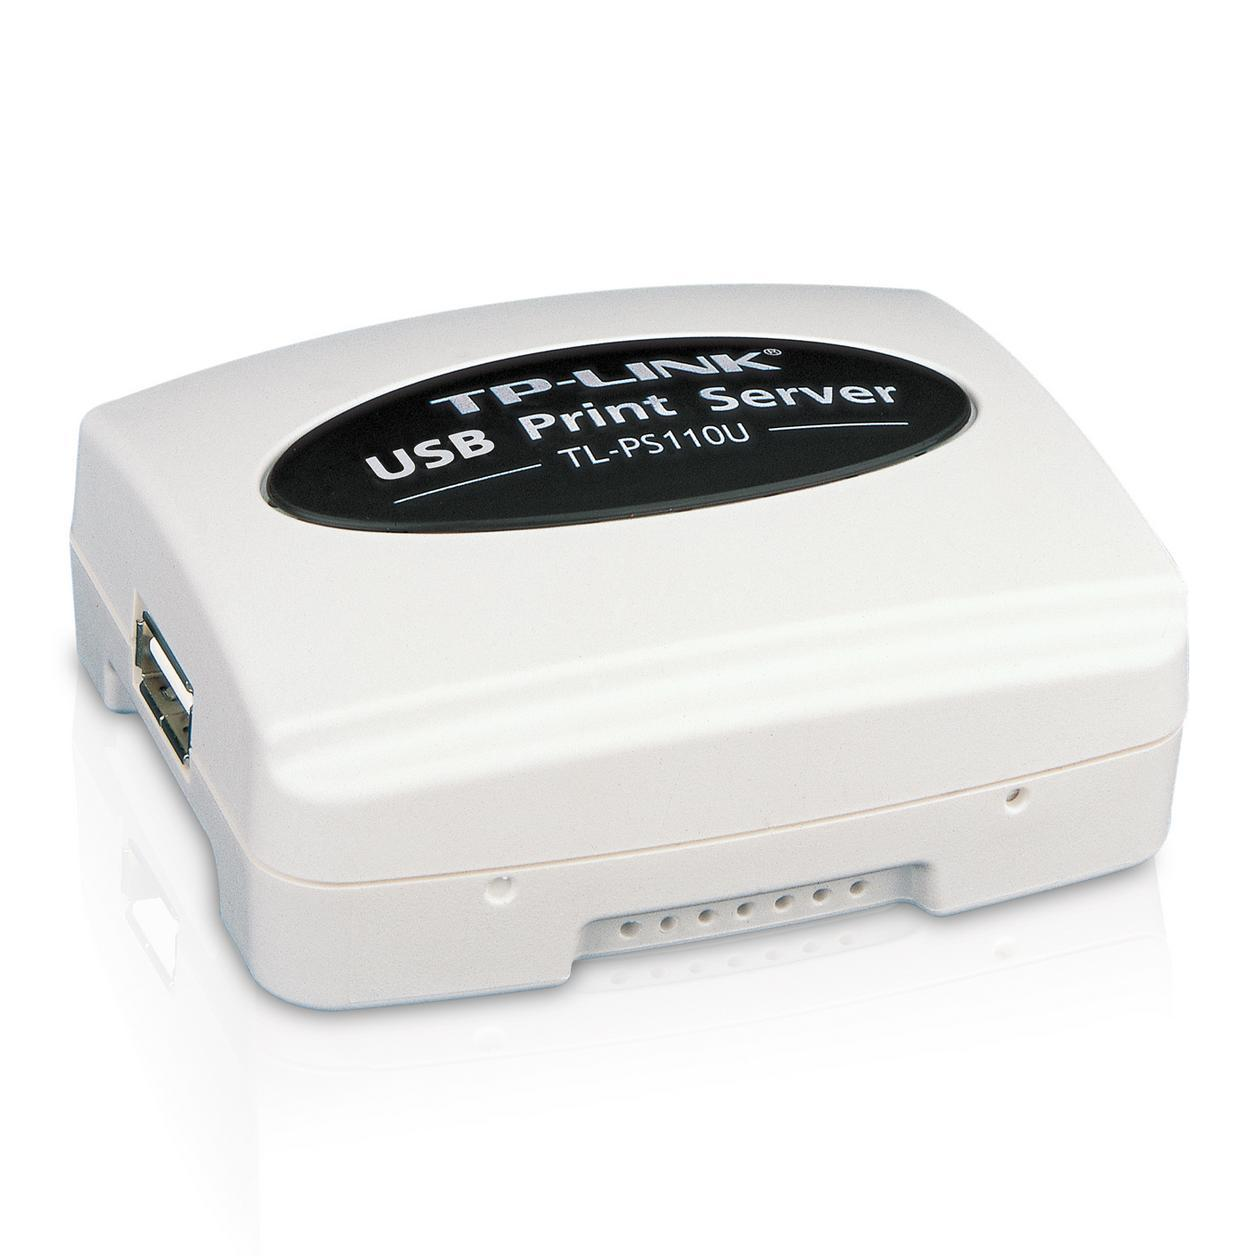 Image of 1x USB Print Server - TP-Link